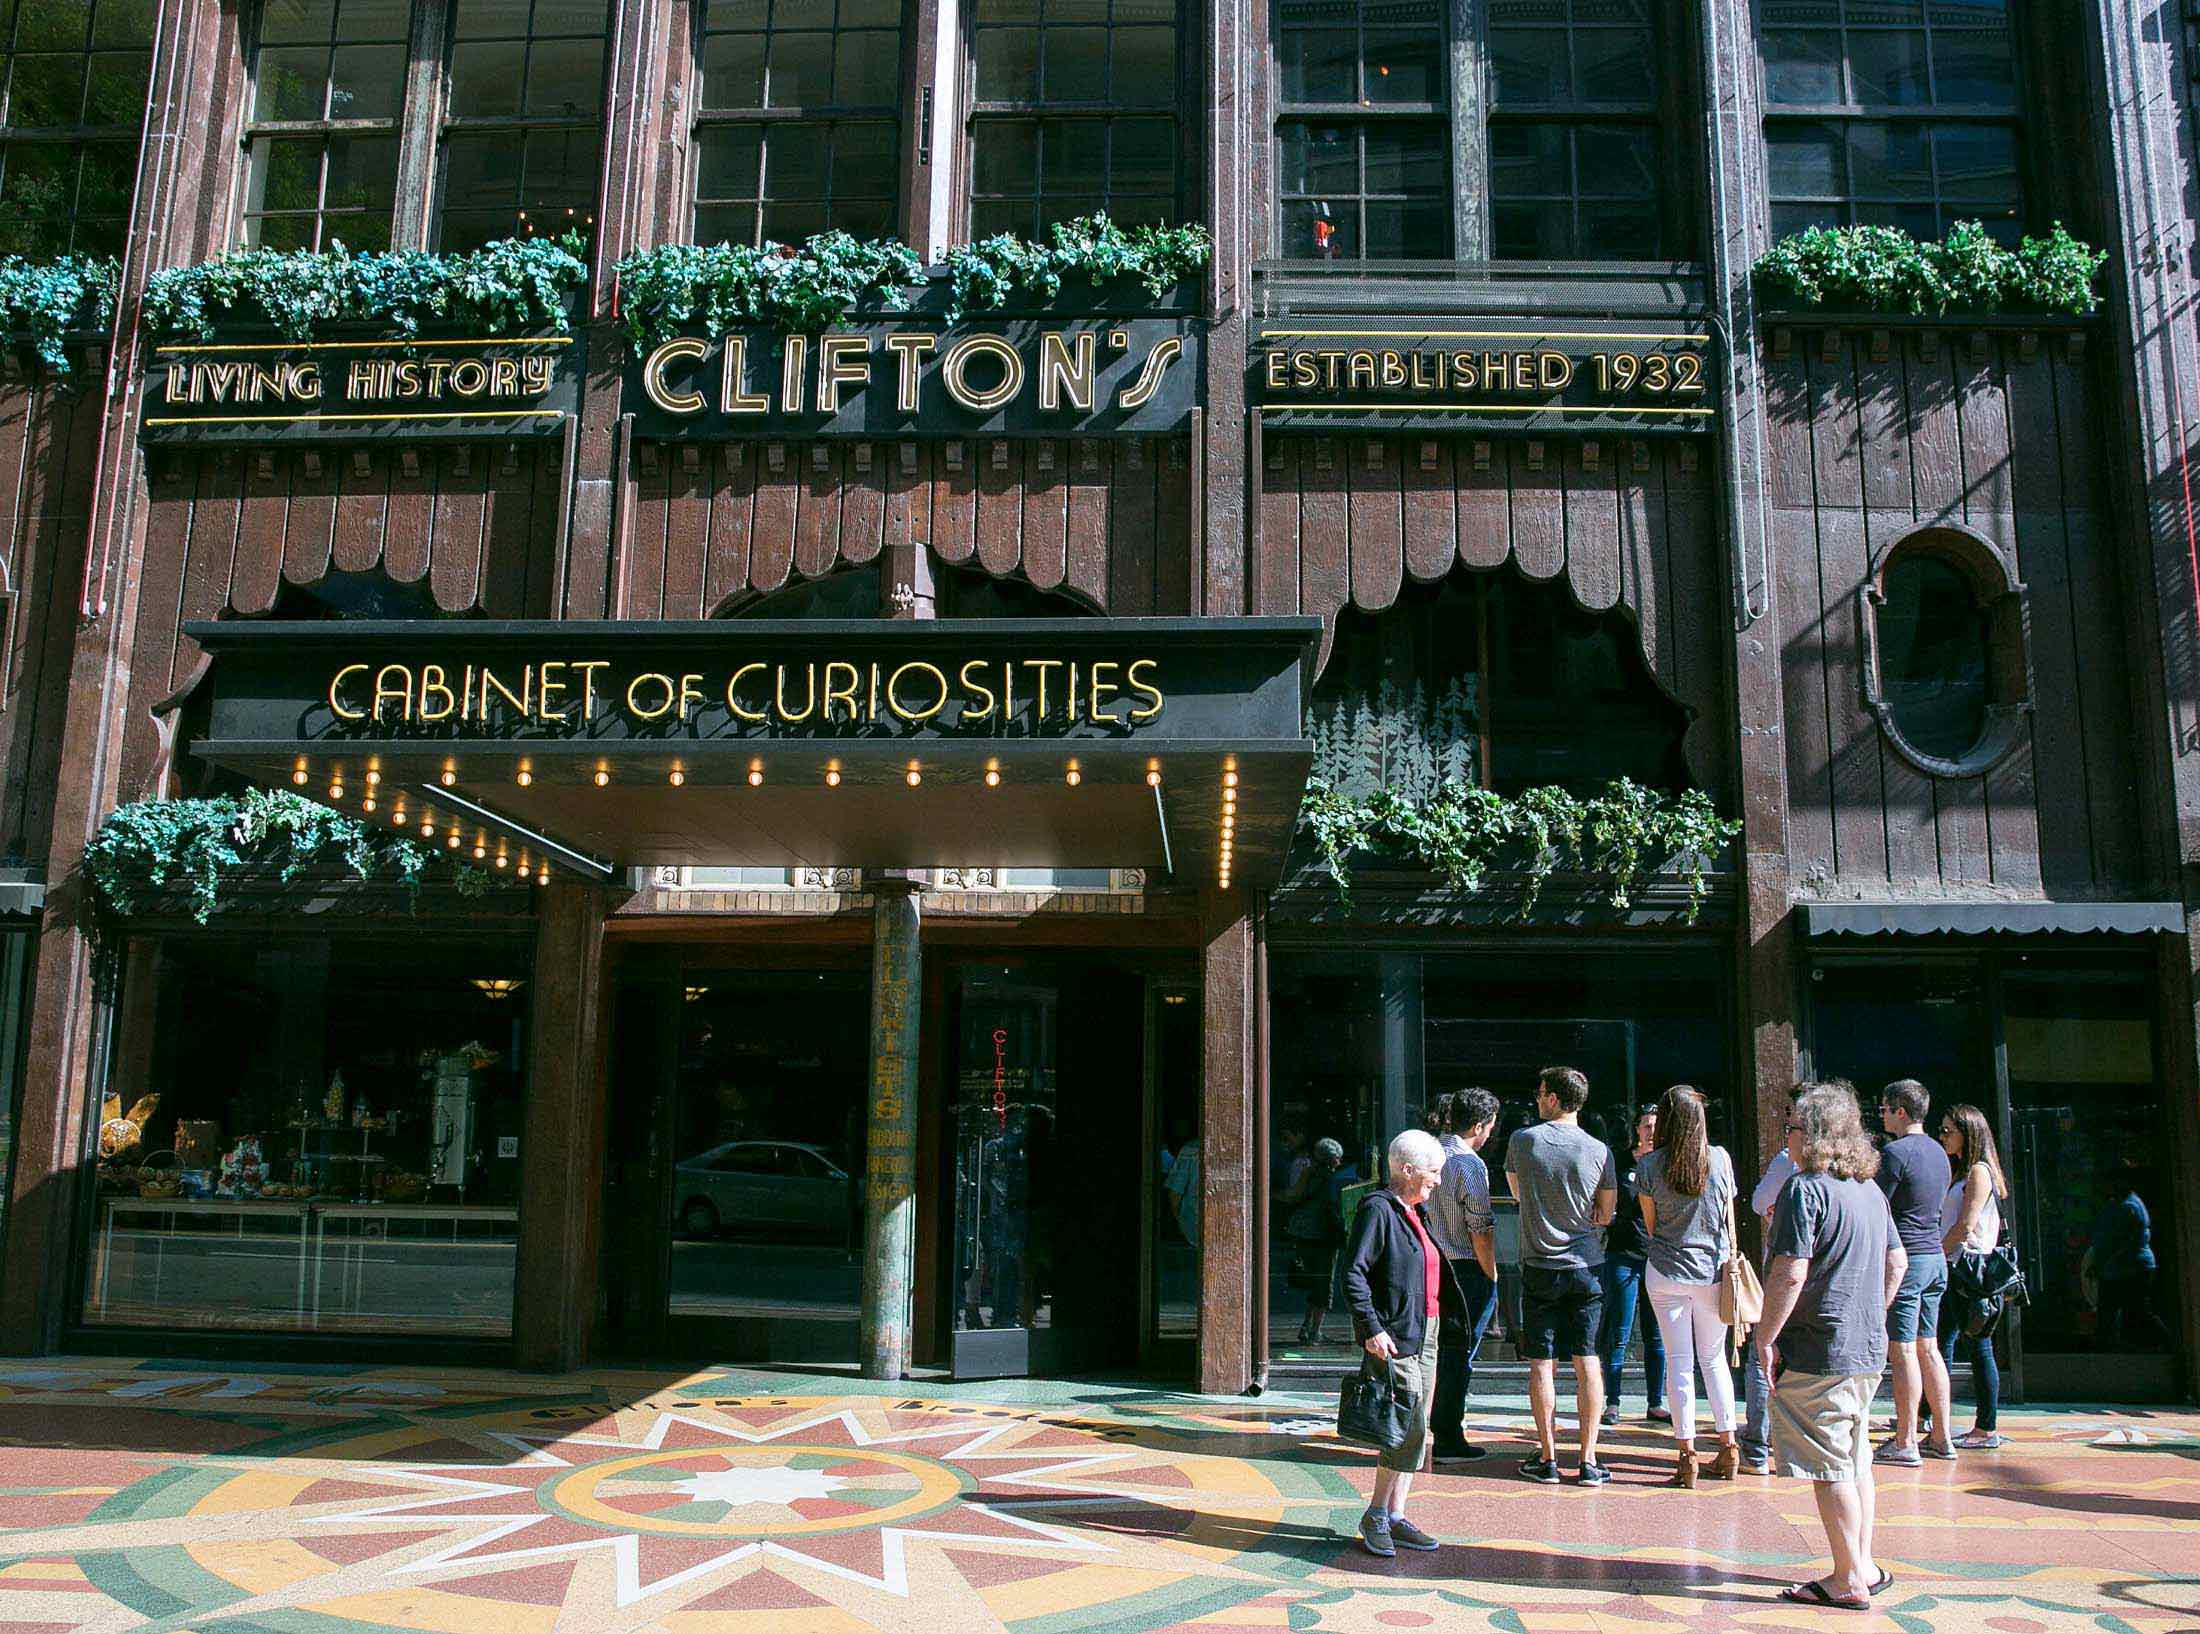 Entrance to Clifton's Cabinet of Curiosities